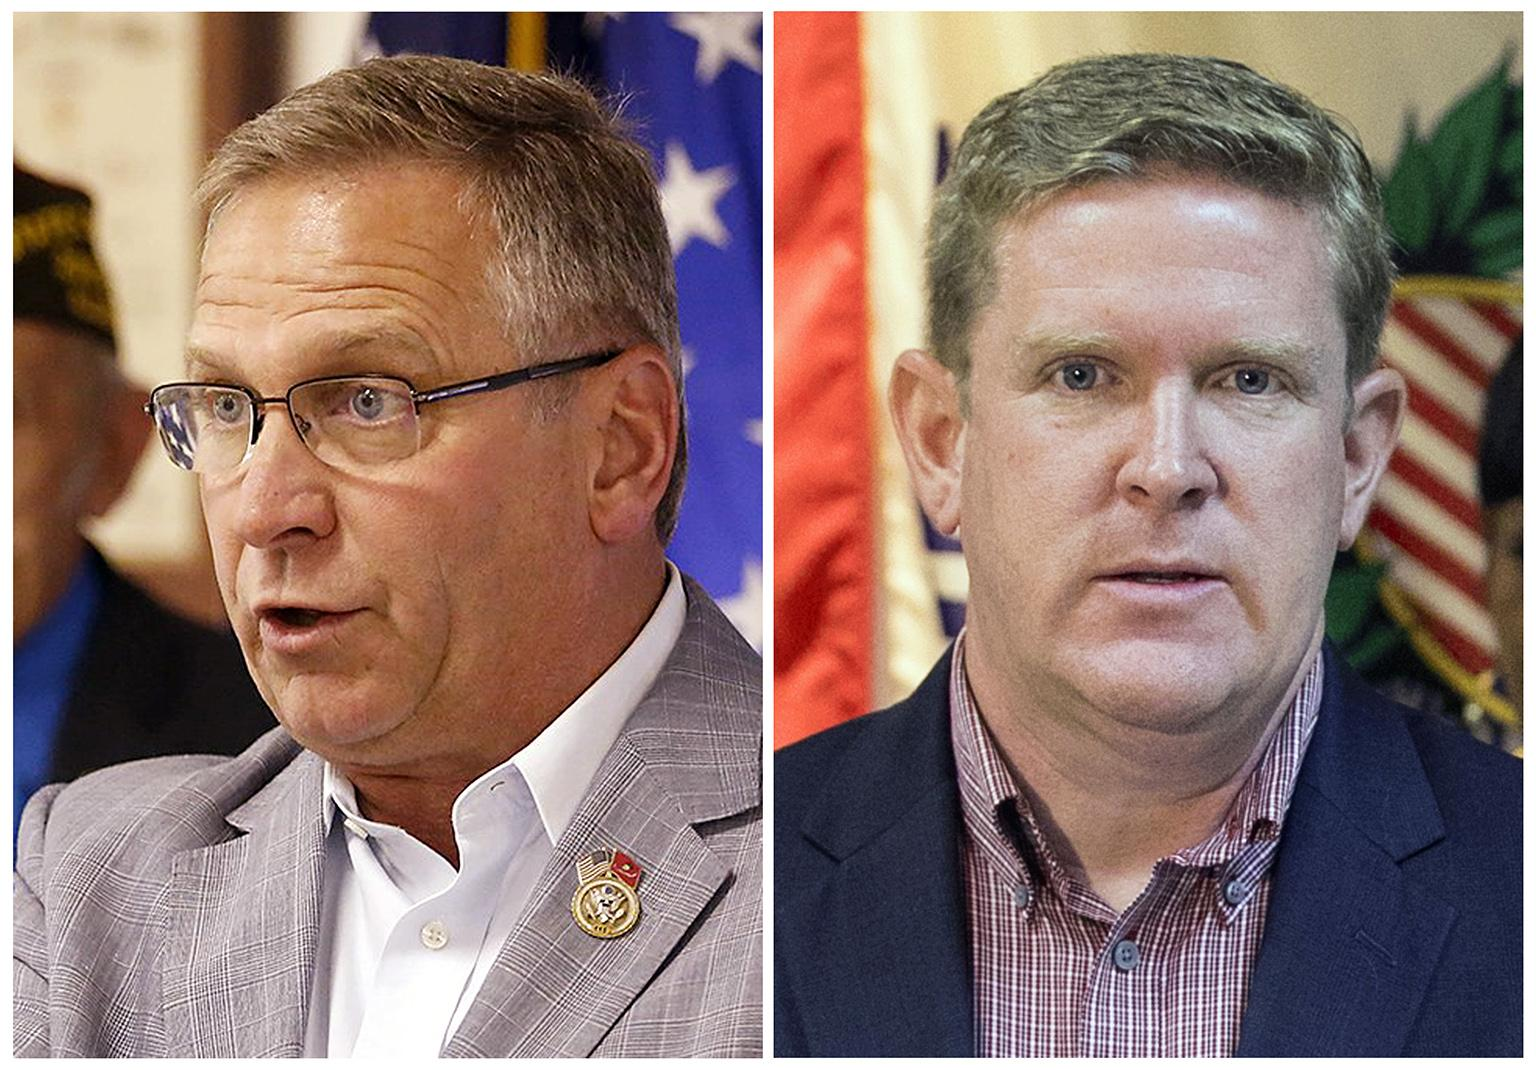 The candidates for Illinois' 12th District seat in the November 2018 election, from left: incumbent GOP Rep. Mike Bost, of Murphysboro; and Democrat Brendan Kelly, of Swansea. (Belleville News-Democrat via AP)